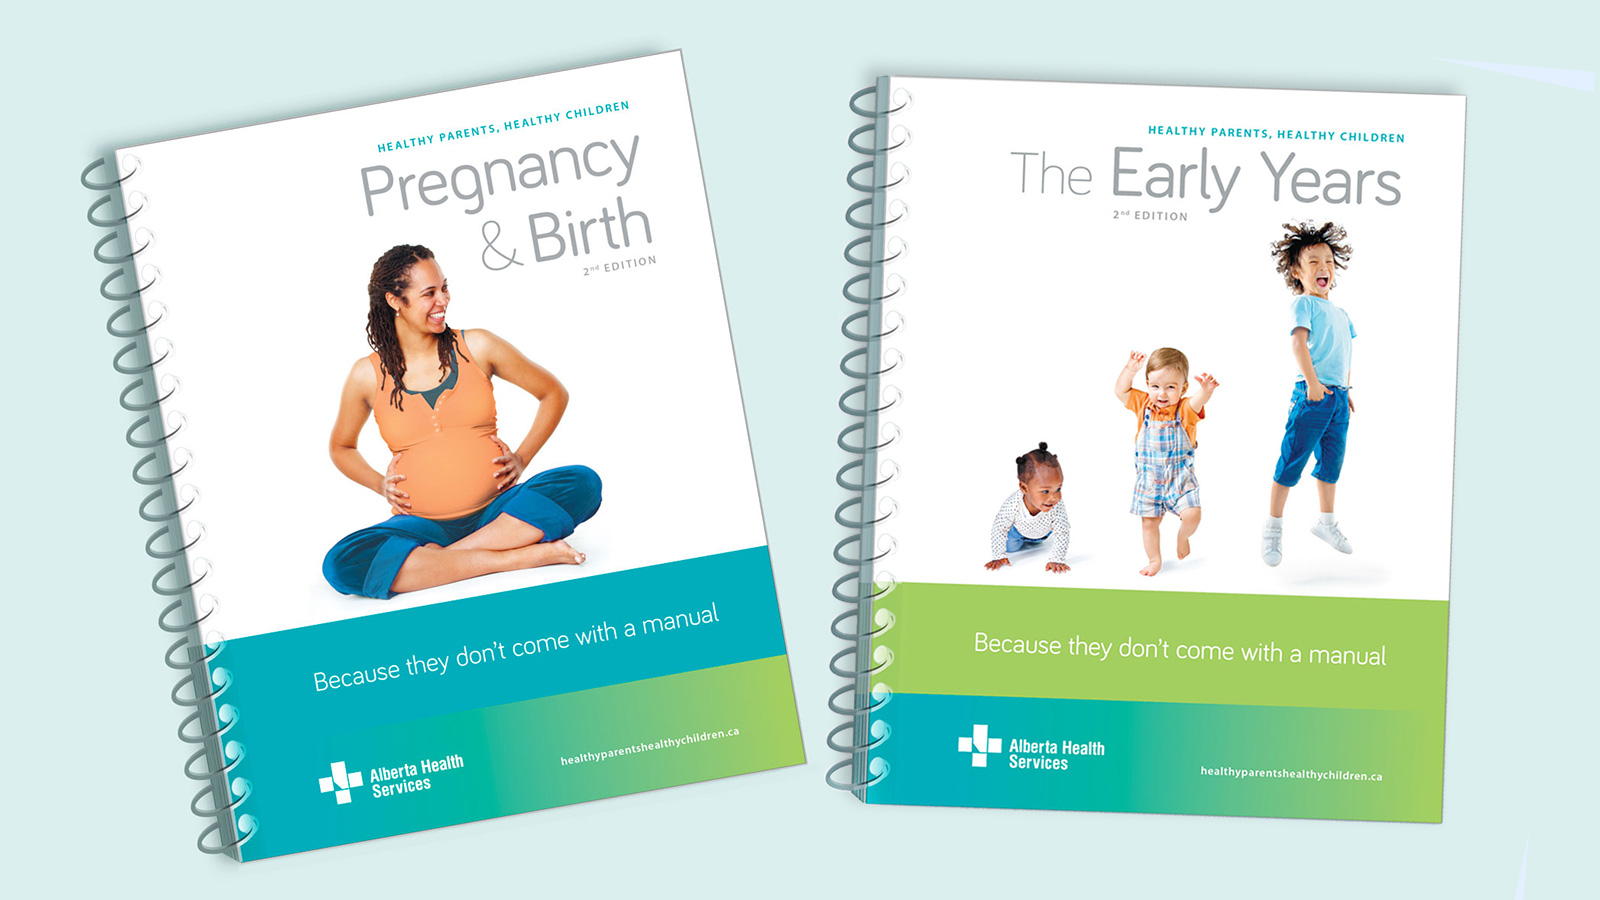 AHS Pregnancy and Early Years books